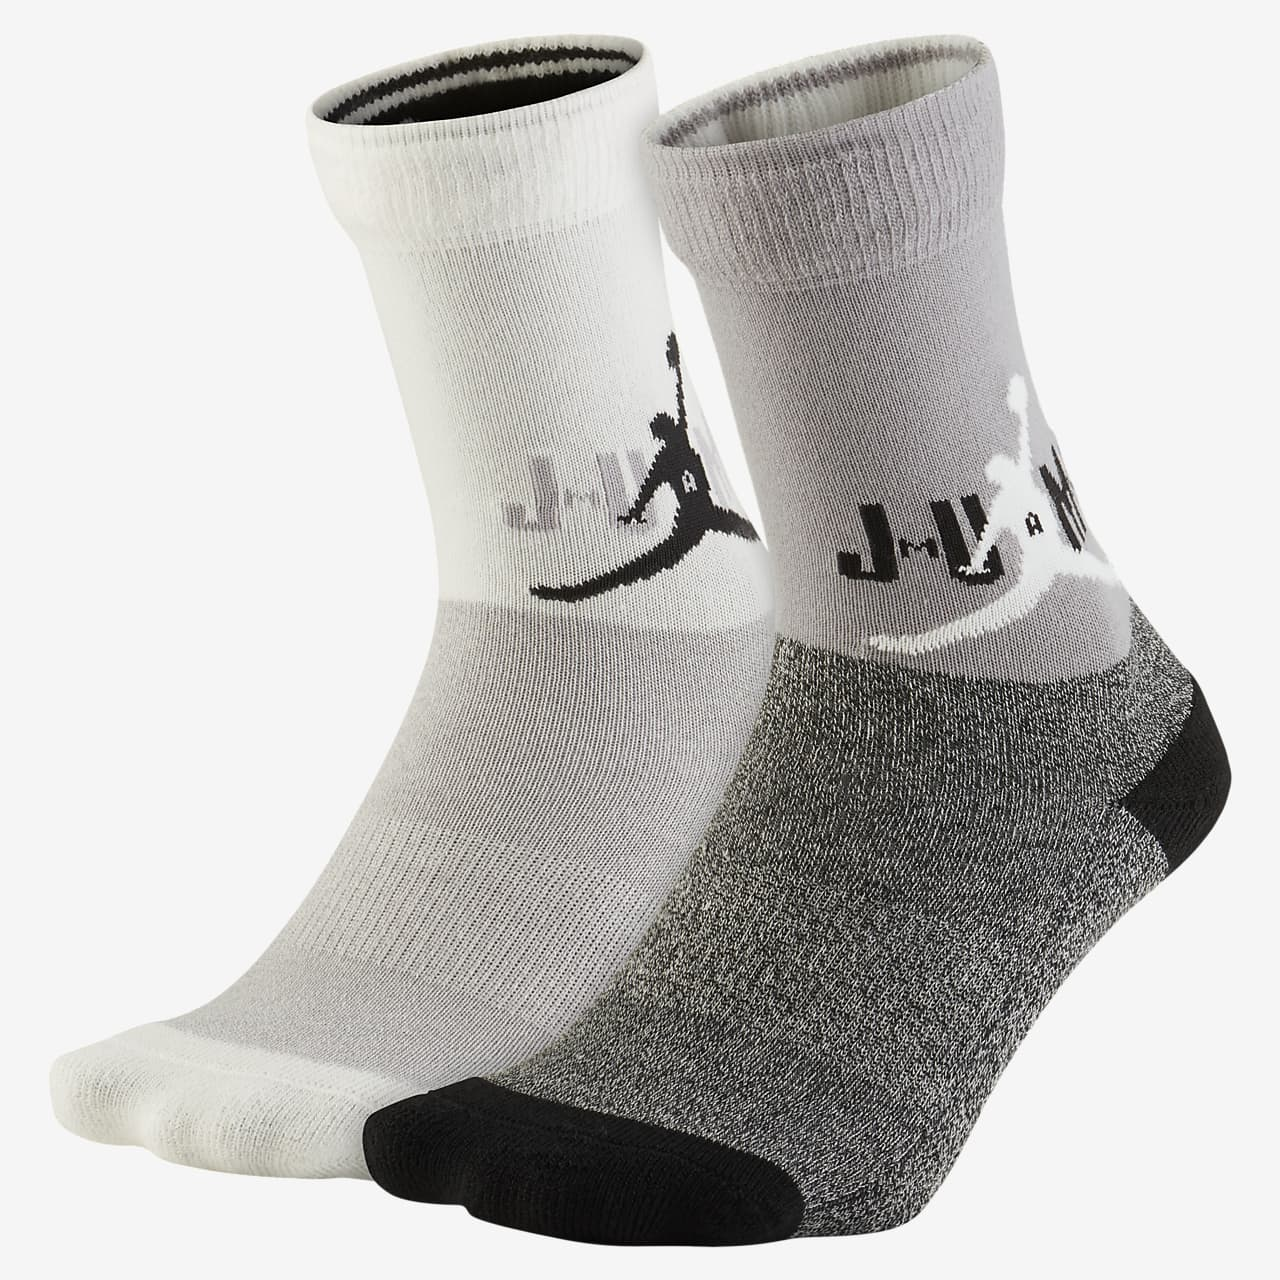 Jordan Older Kids' Cushioned Crew Socks (2 Pairs)